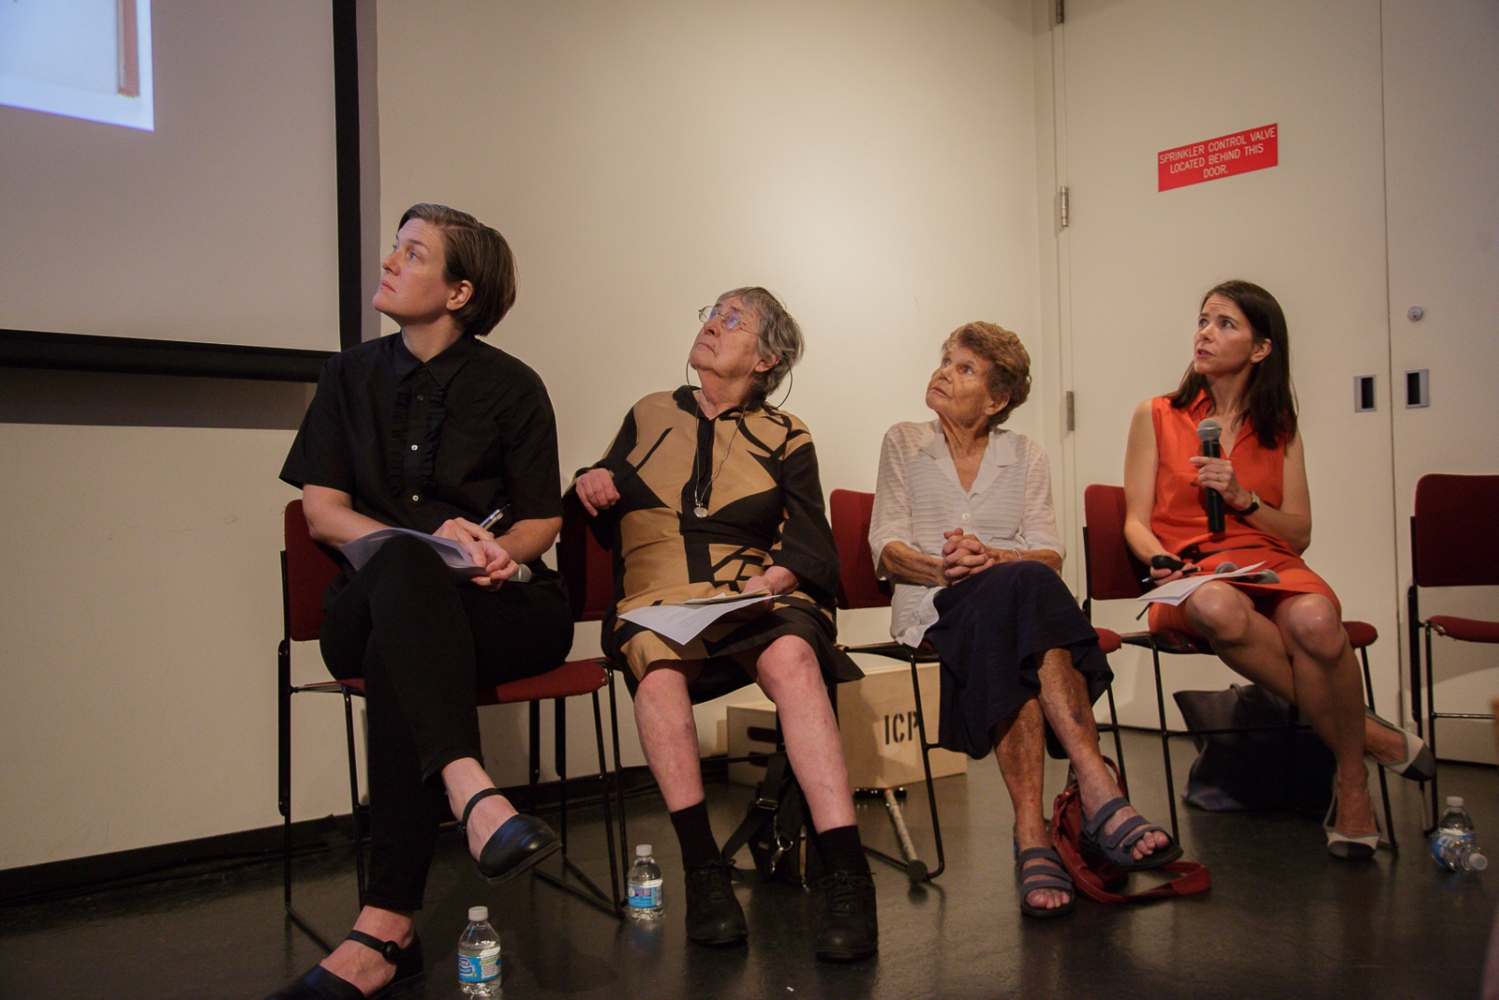 "June 21, 2017 - International Center of Photography School. New York City, NY, USA - (From left to right): Kristen Lubben, executive director of the Magnum Foundation, Inge Bondi, who joined Magnum in 1950 for about 20 years, Jinx Rodger, wife of George Rodger photographer and founding member of Magnum, Cynthia Young, curator at the ICP Museum, during the panel discussion ""Magnum Photos Now- Photobooks: History, Future, Form""."